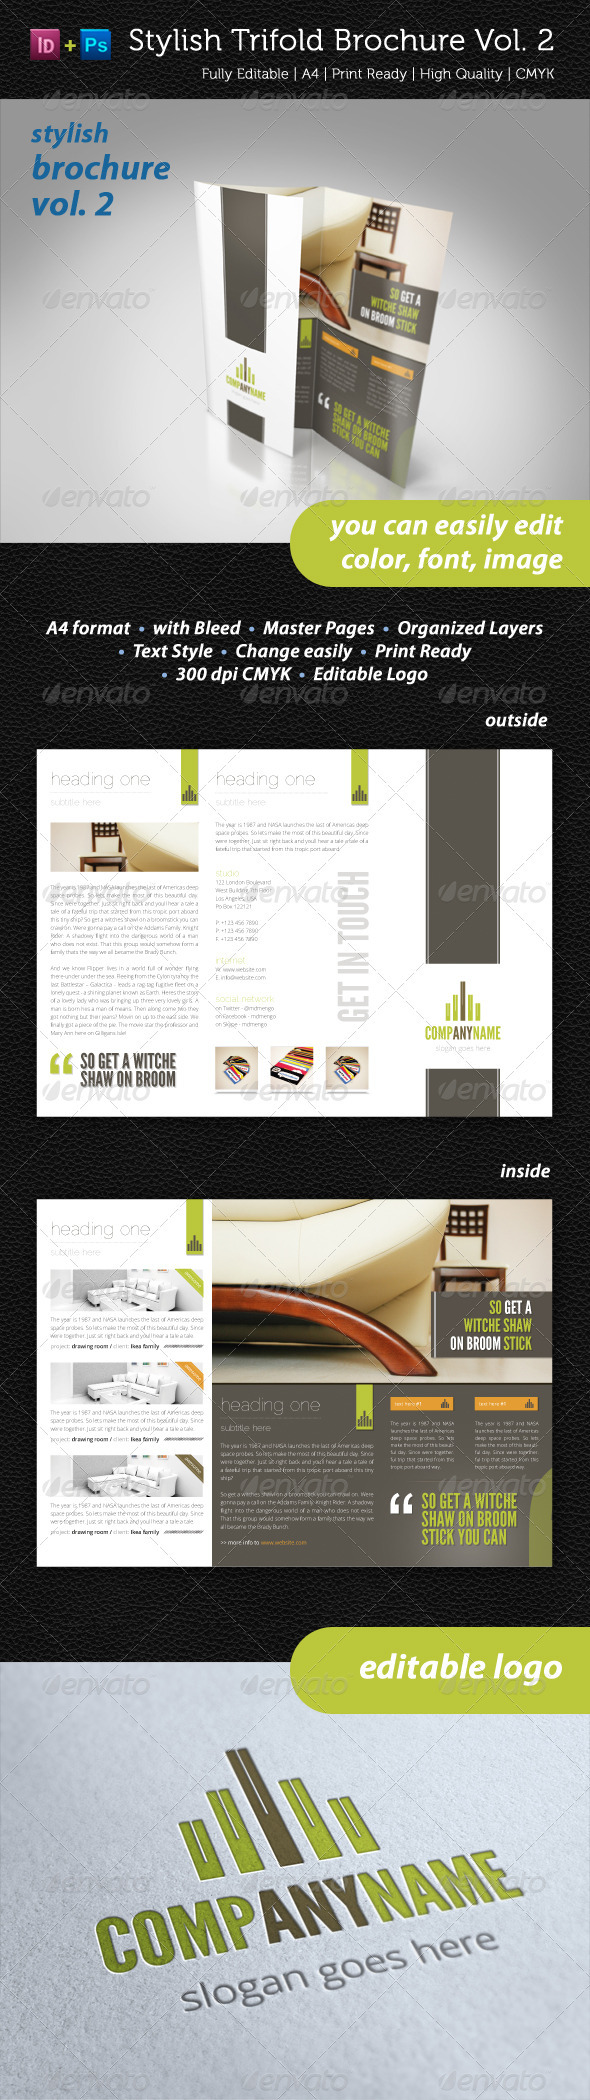 Stylish Trifold Brochure Vol. 2 - Informational Brochures